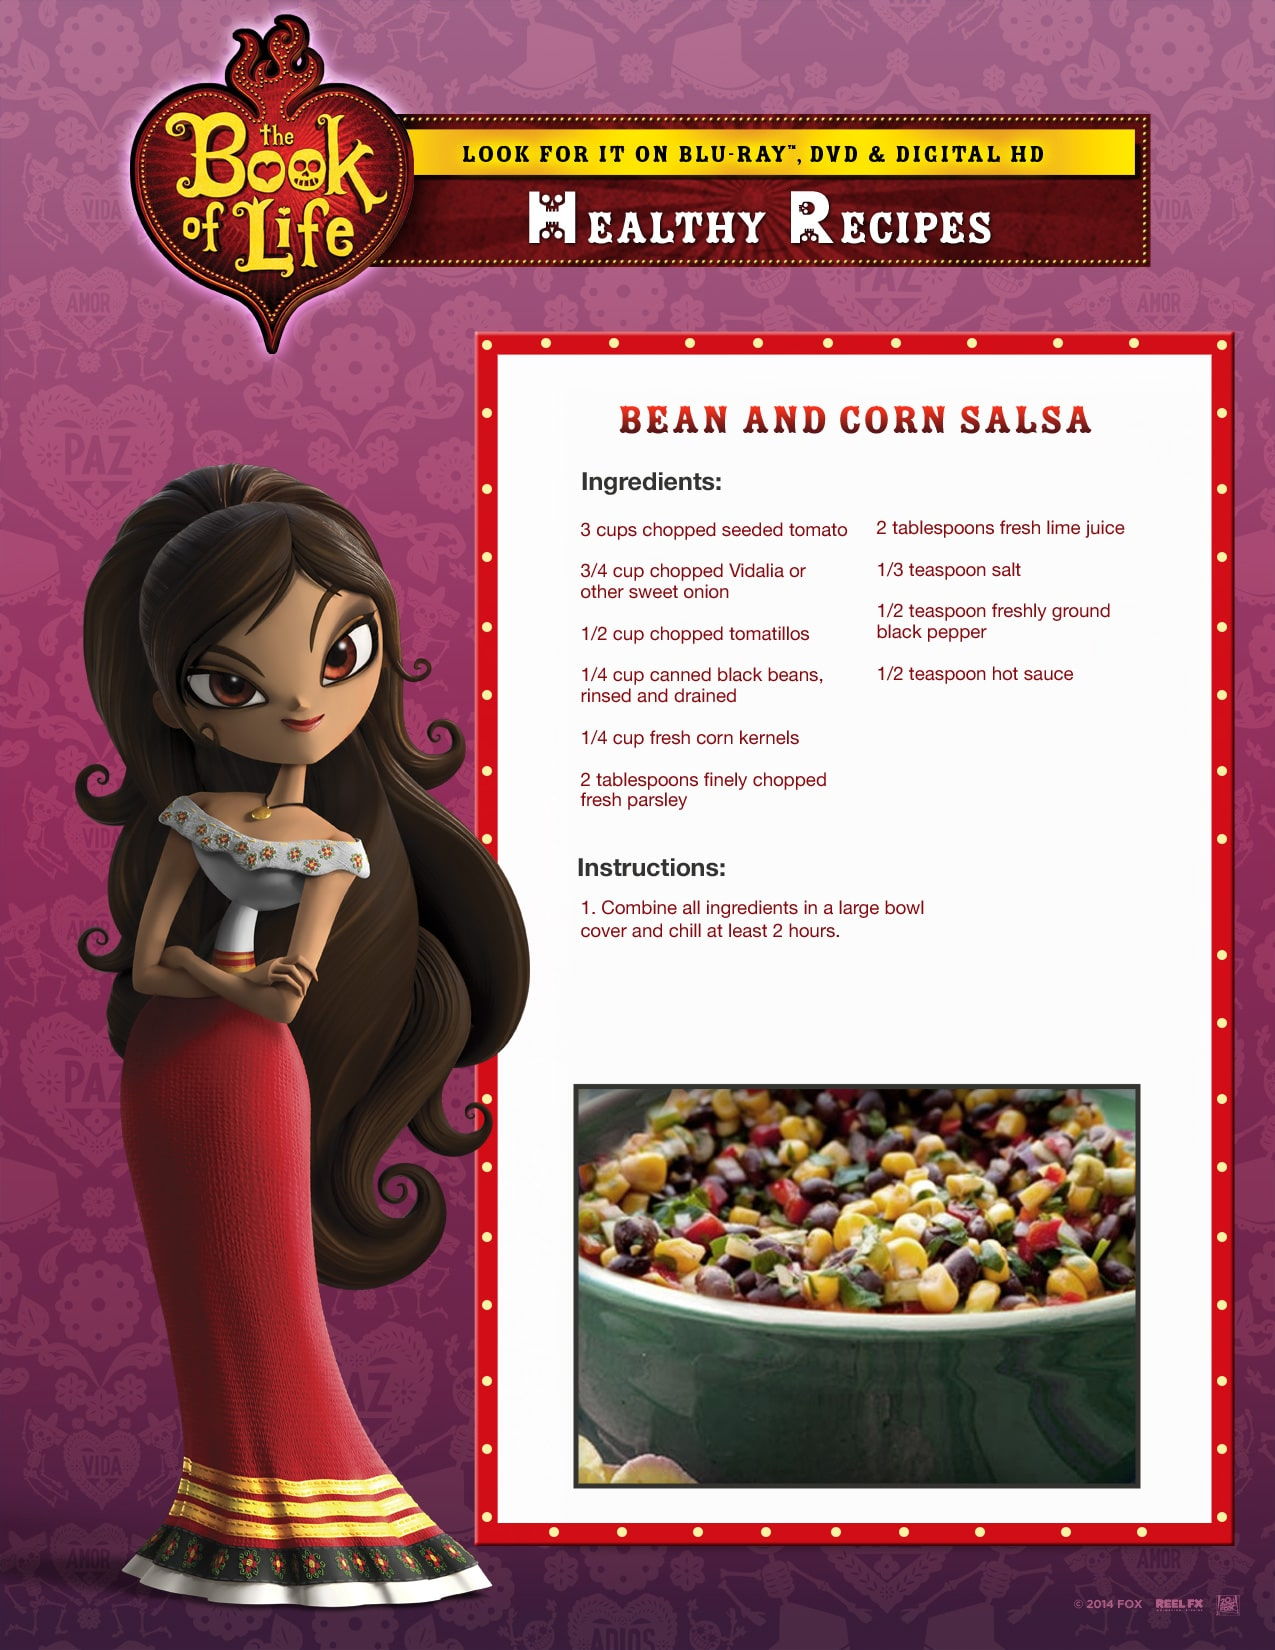 Book of life for coloring - Recipe 1